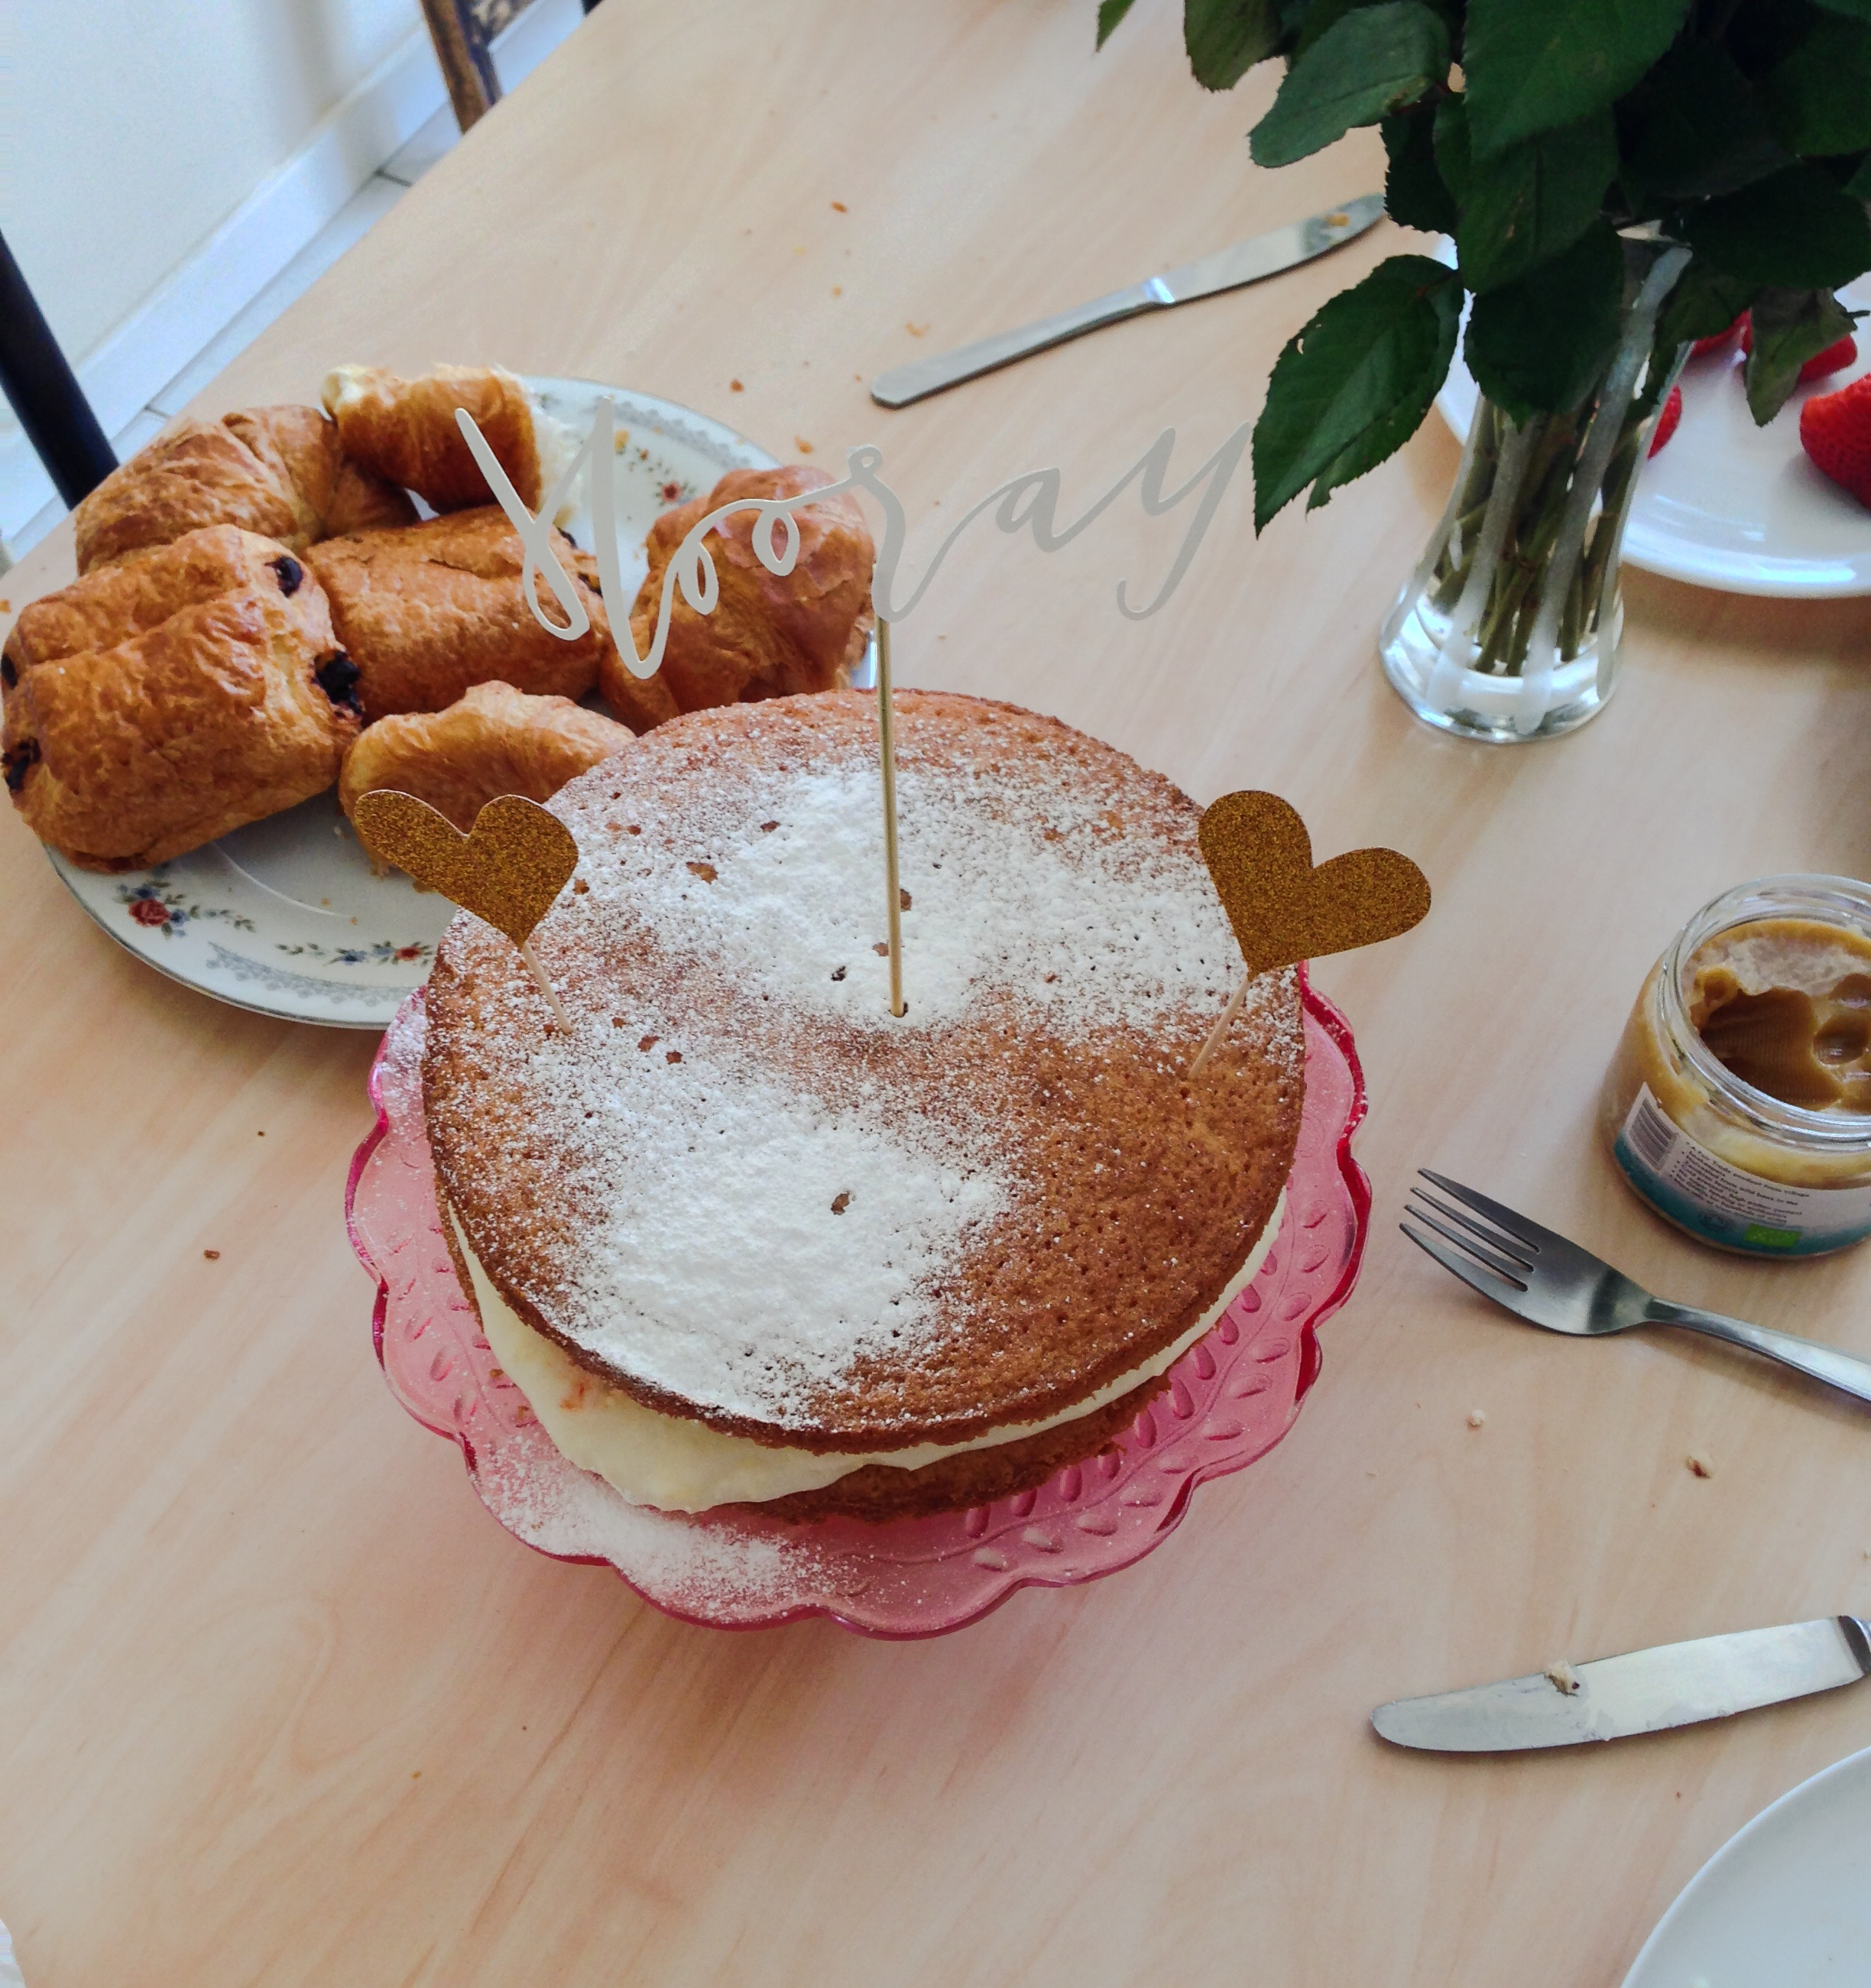 My sister baked this really yummy victoria sponge with champagne buttercream and strawberries